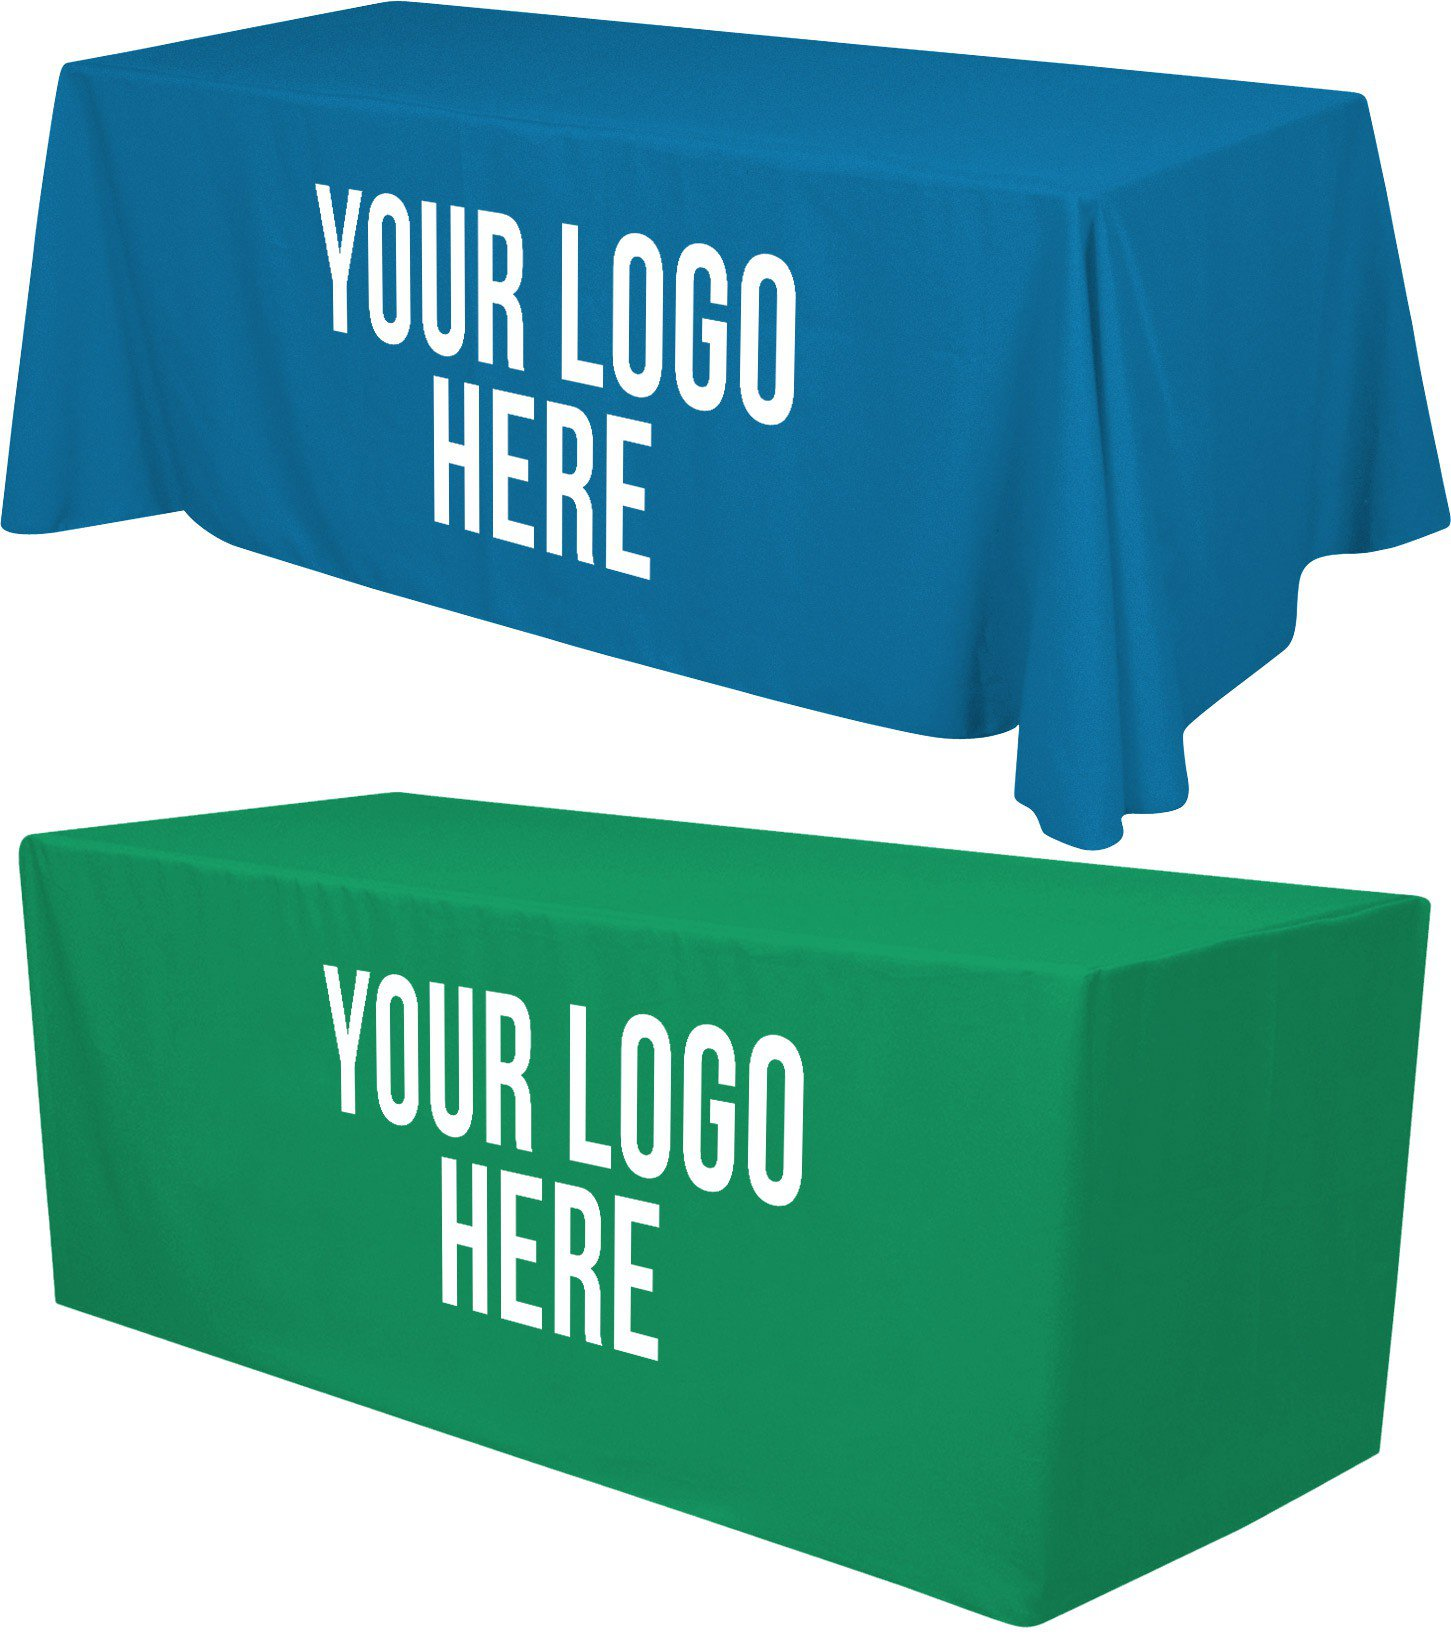 8ft Tablecloth with 1 Color Logo